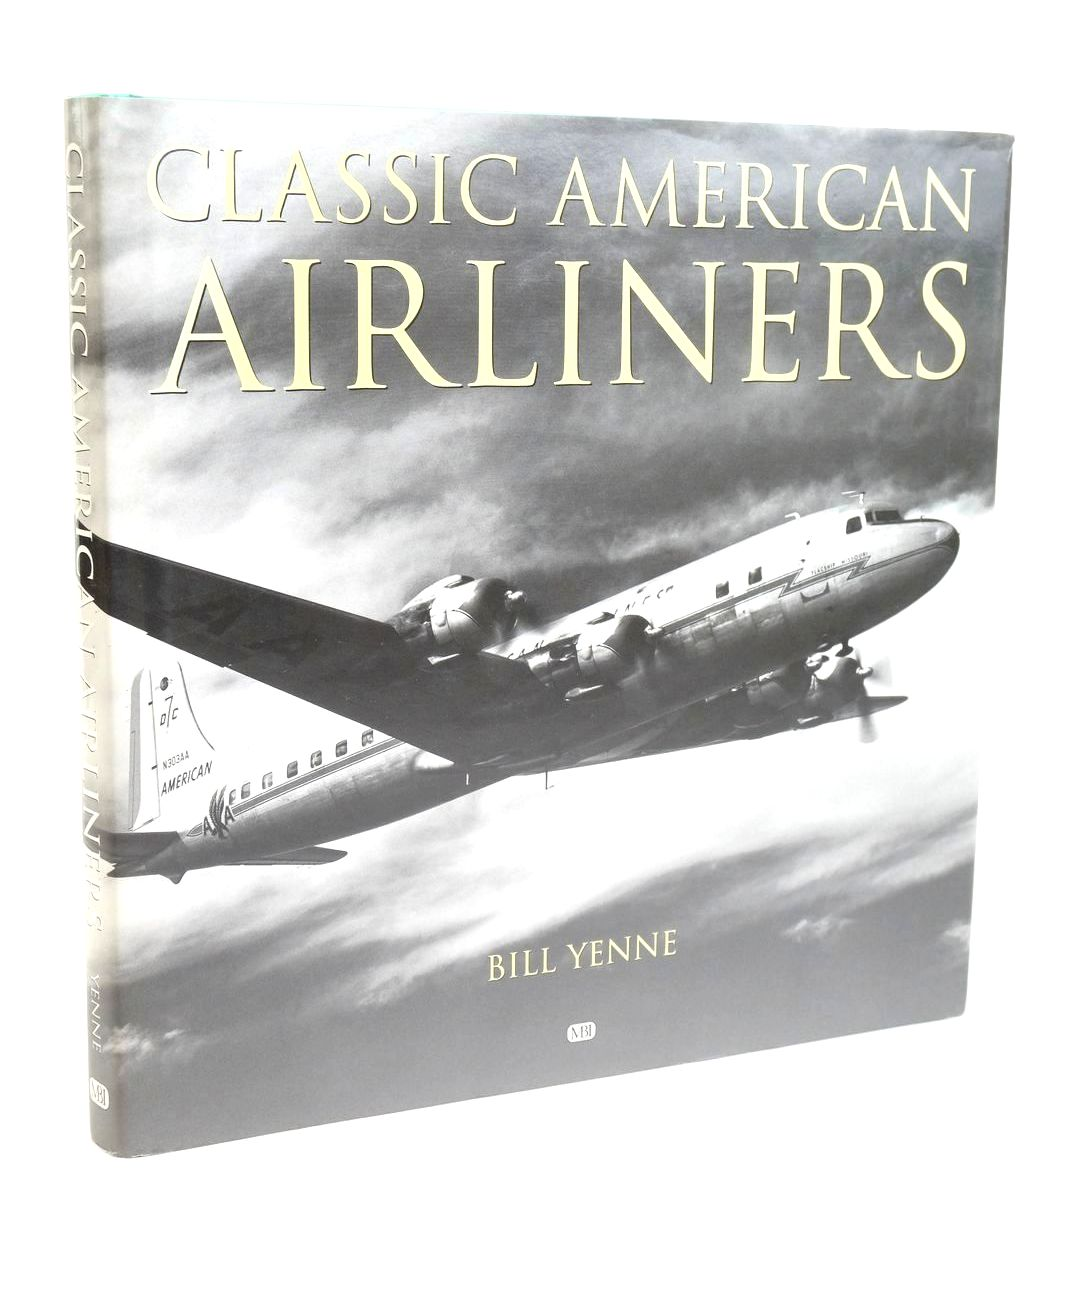 Photo of CLASSIC AMERICAN AIRLINERS written by Yenne, Bill published by MBI Publishing (STOCK CODE: 1320135)  for sale by Stella & Rose's Books